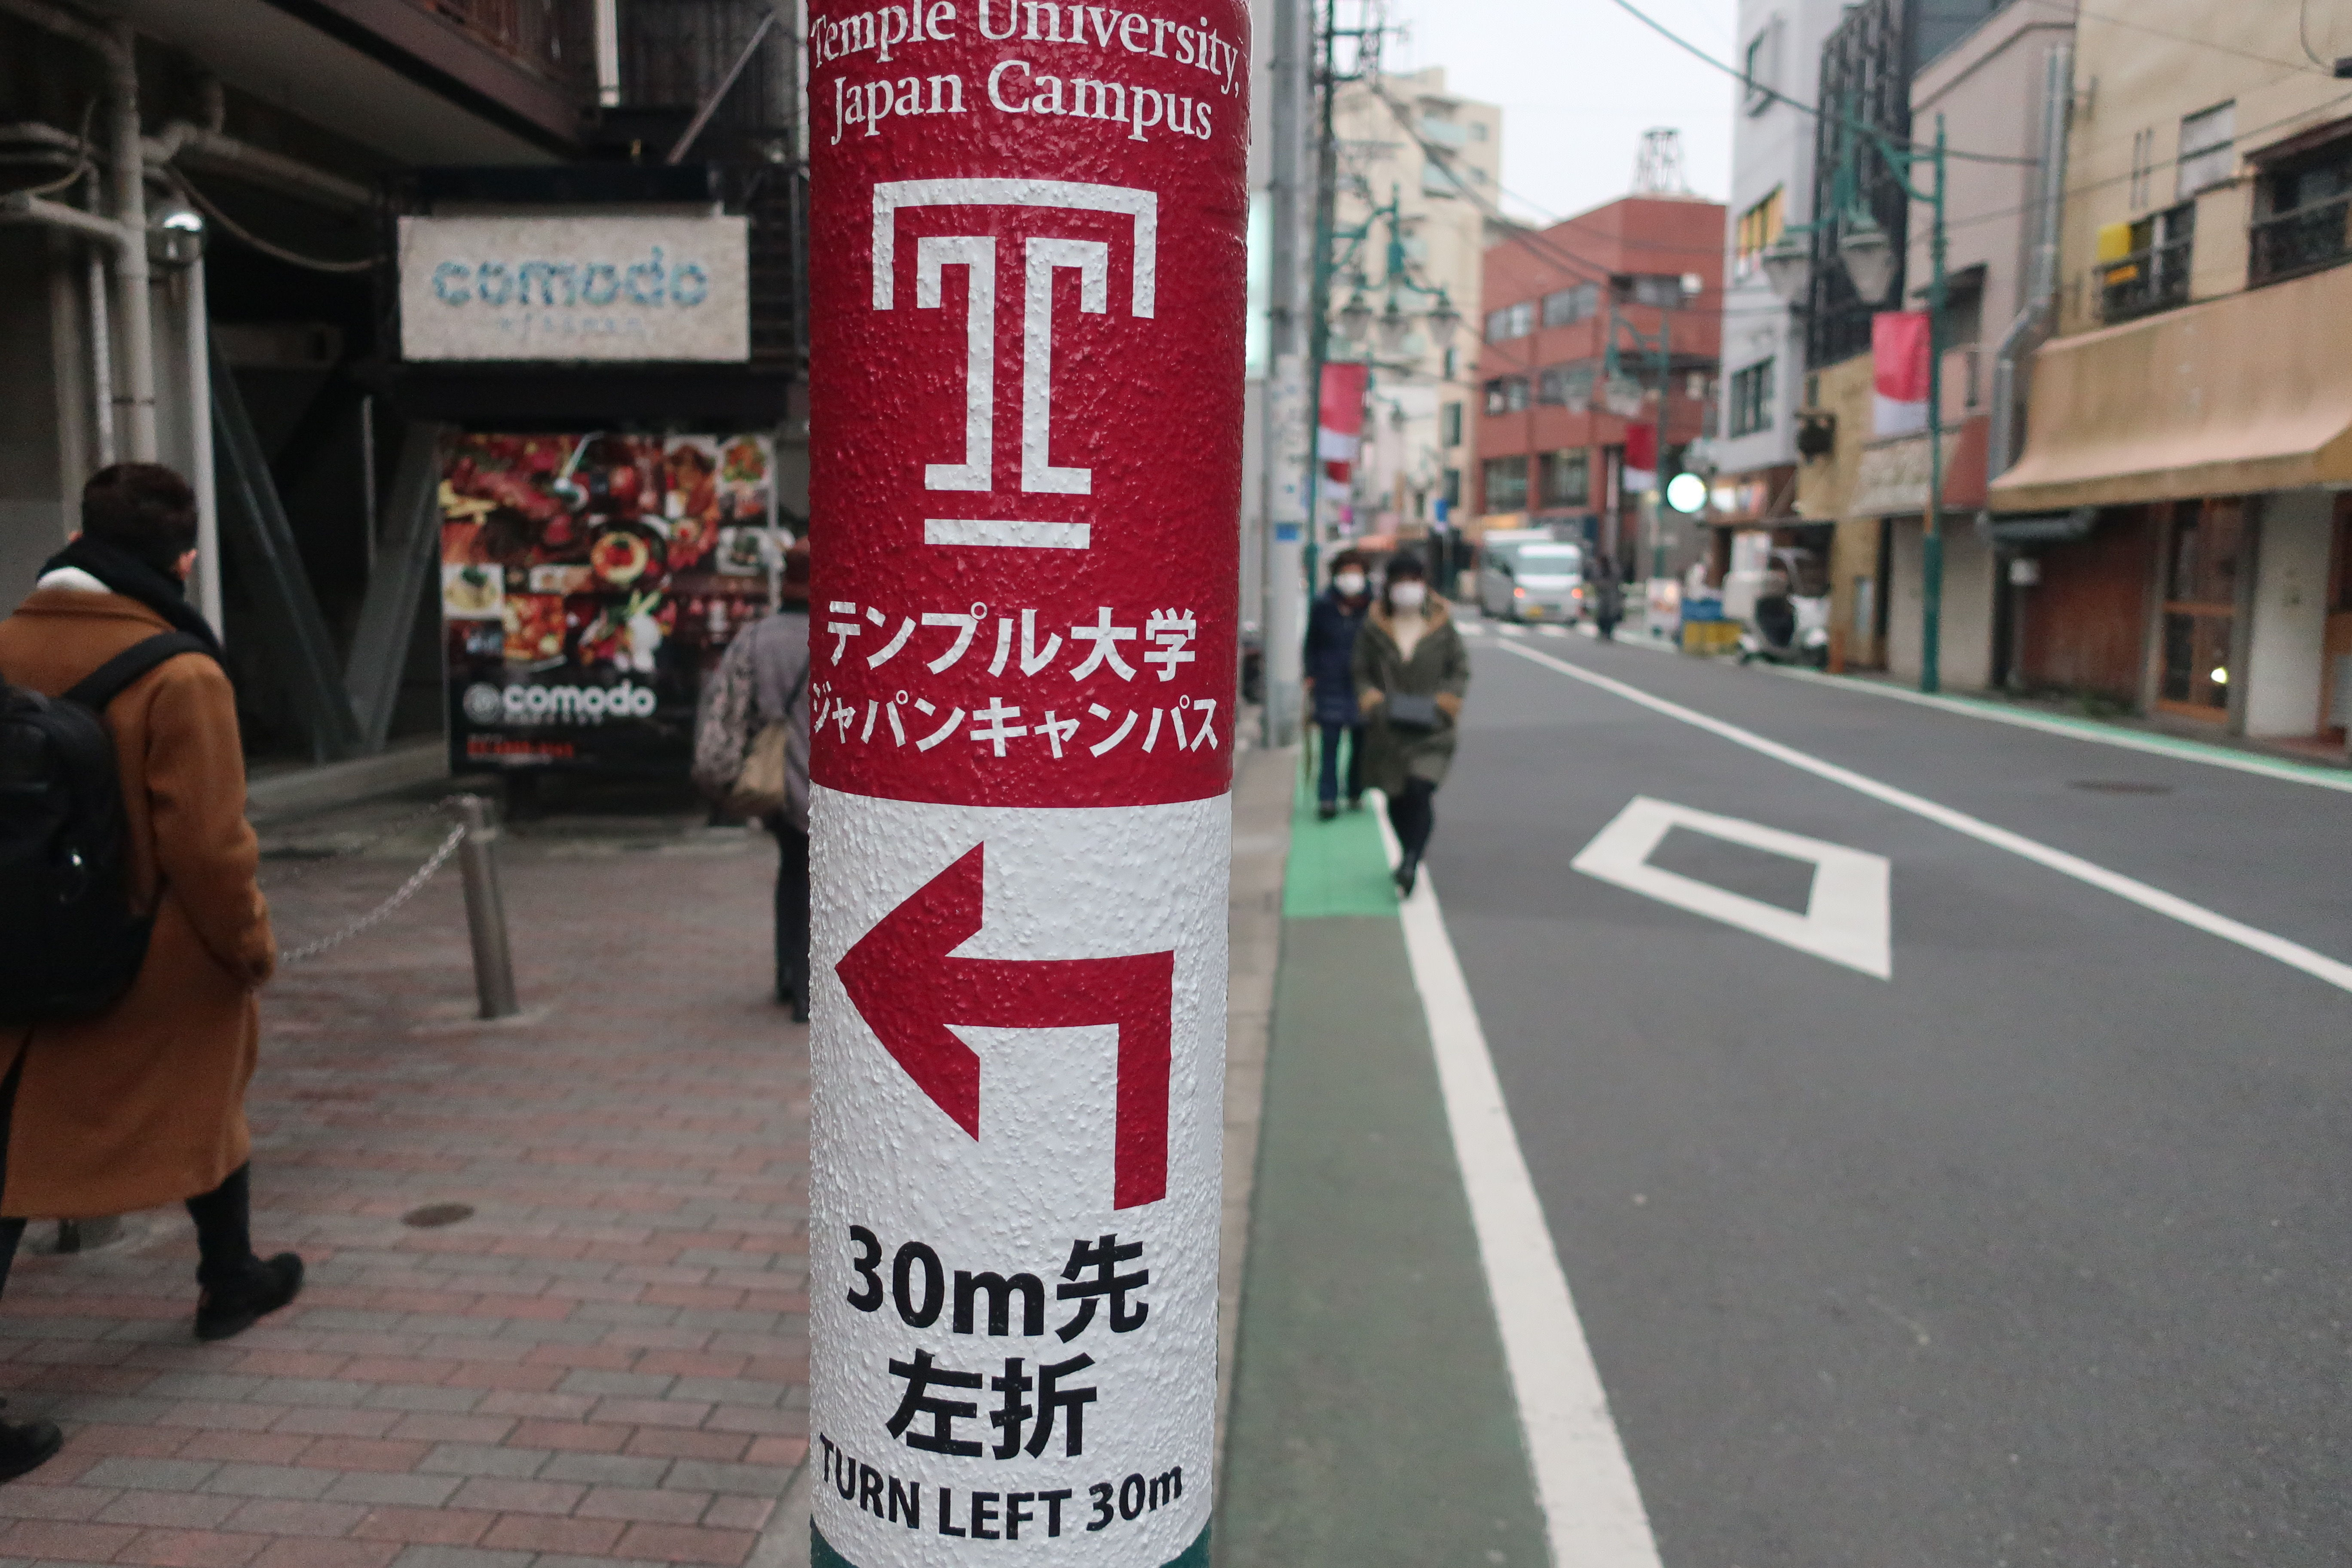 A sign on a street in Tokyo directing towards Temple University Japan.